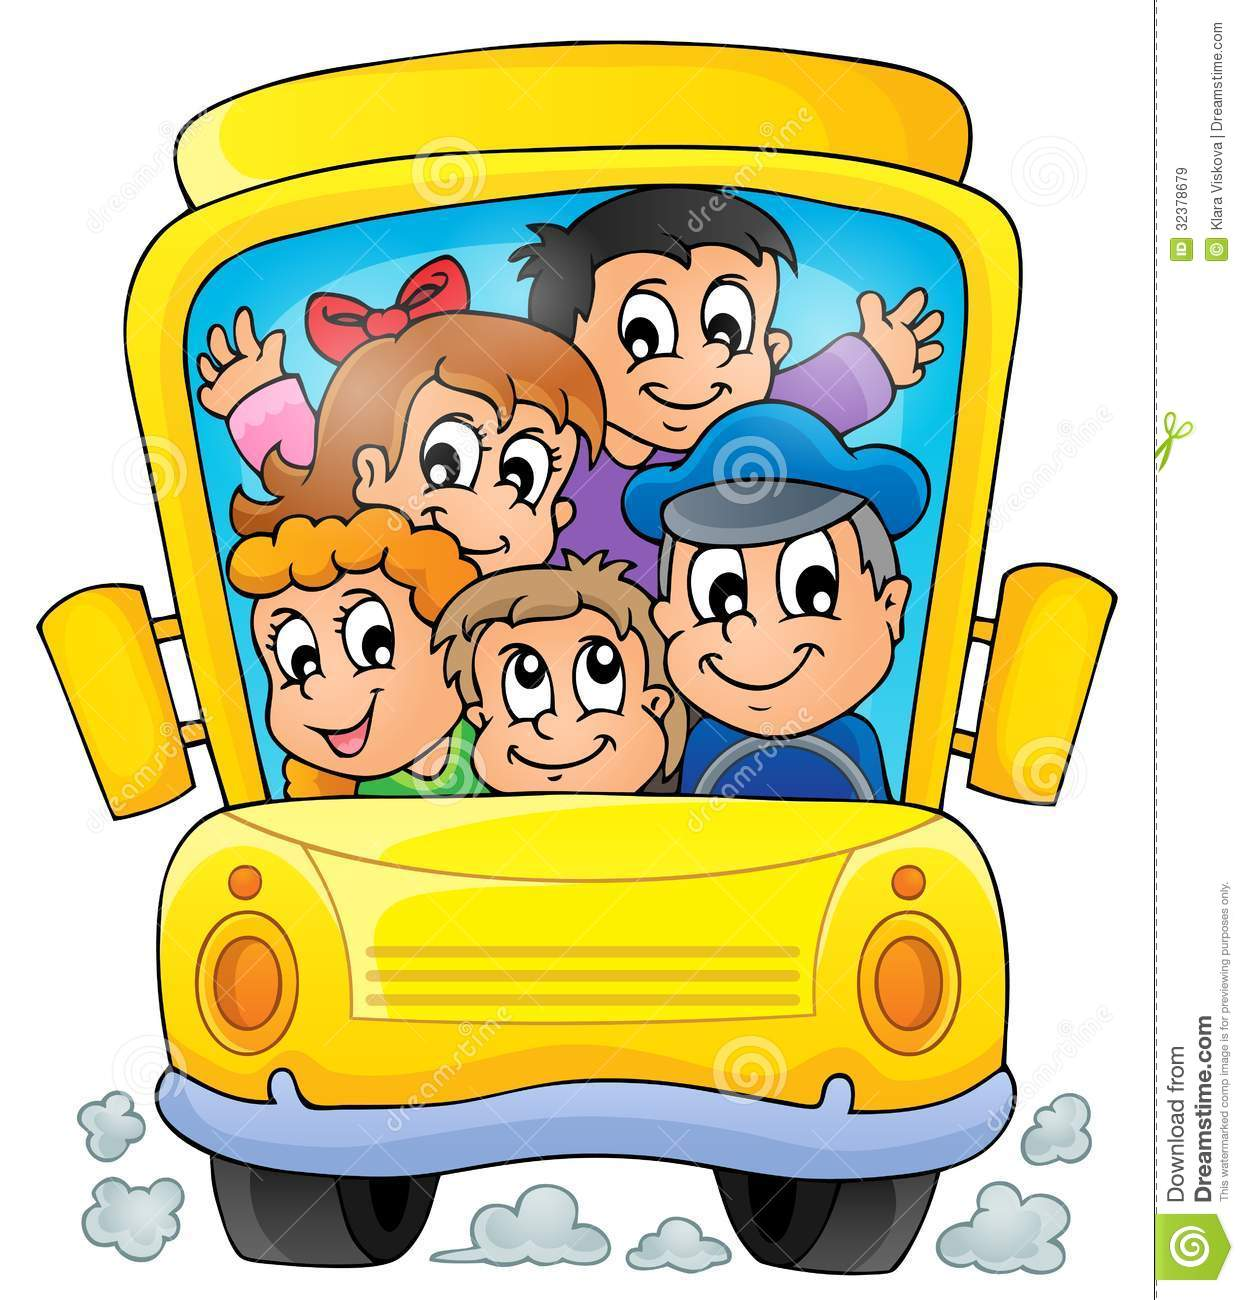 Image With School Bus Theme 1 Royalty Free Stock Images